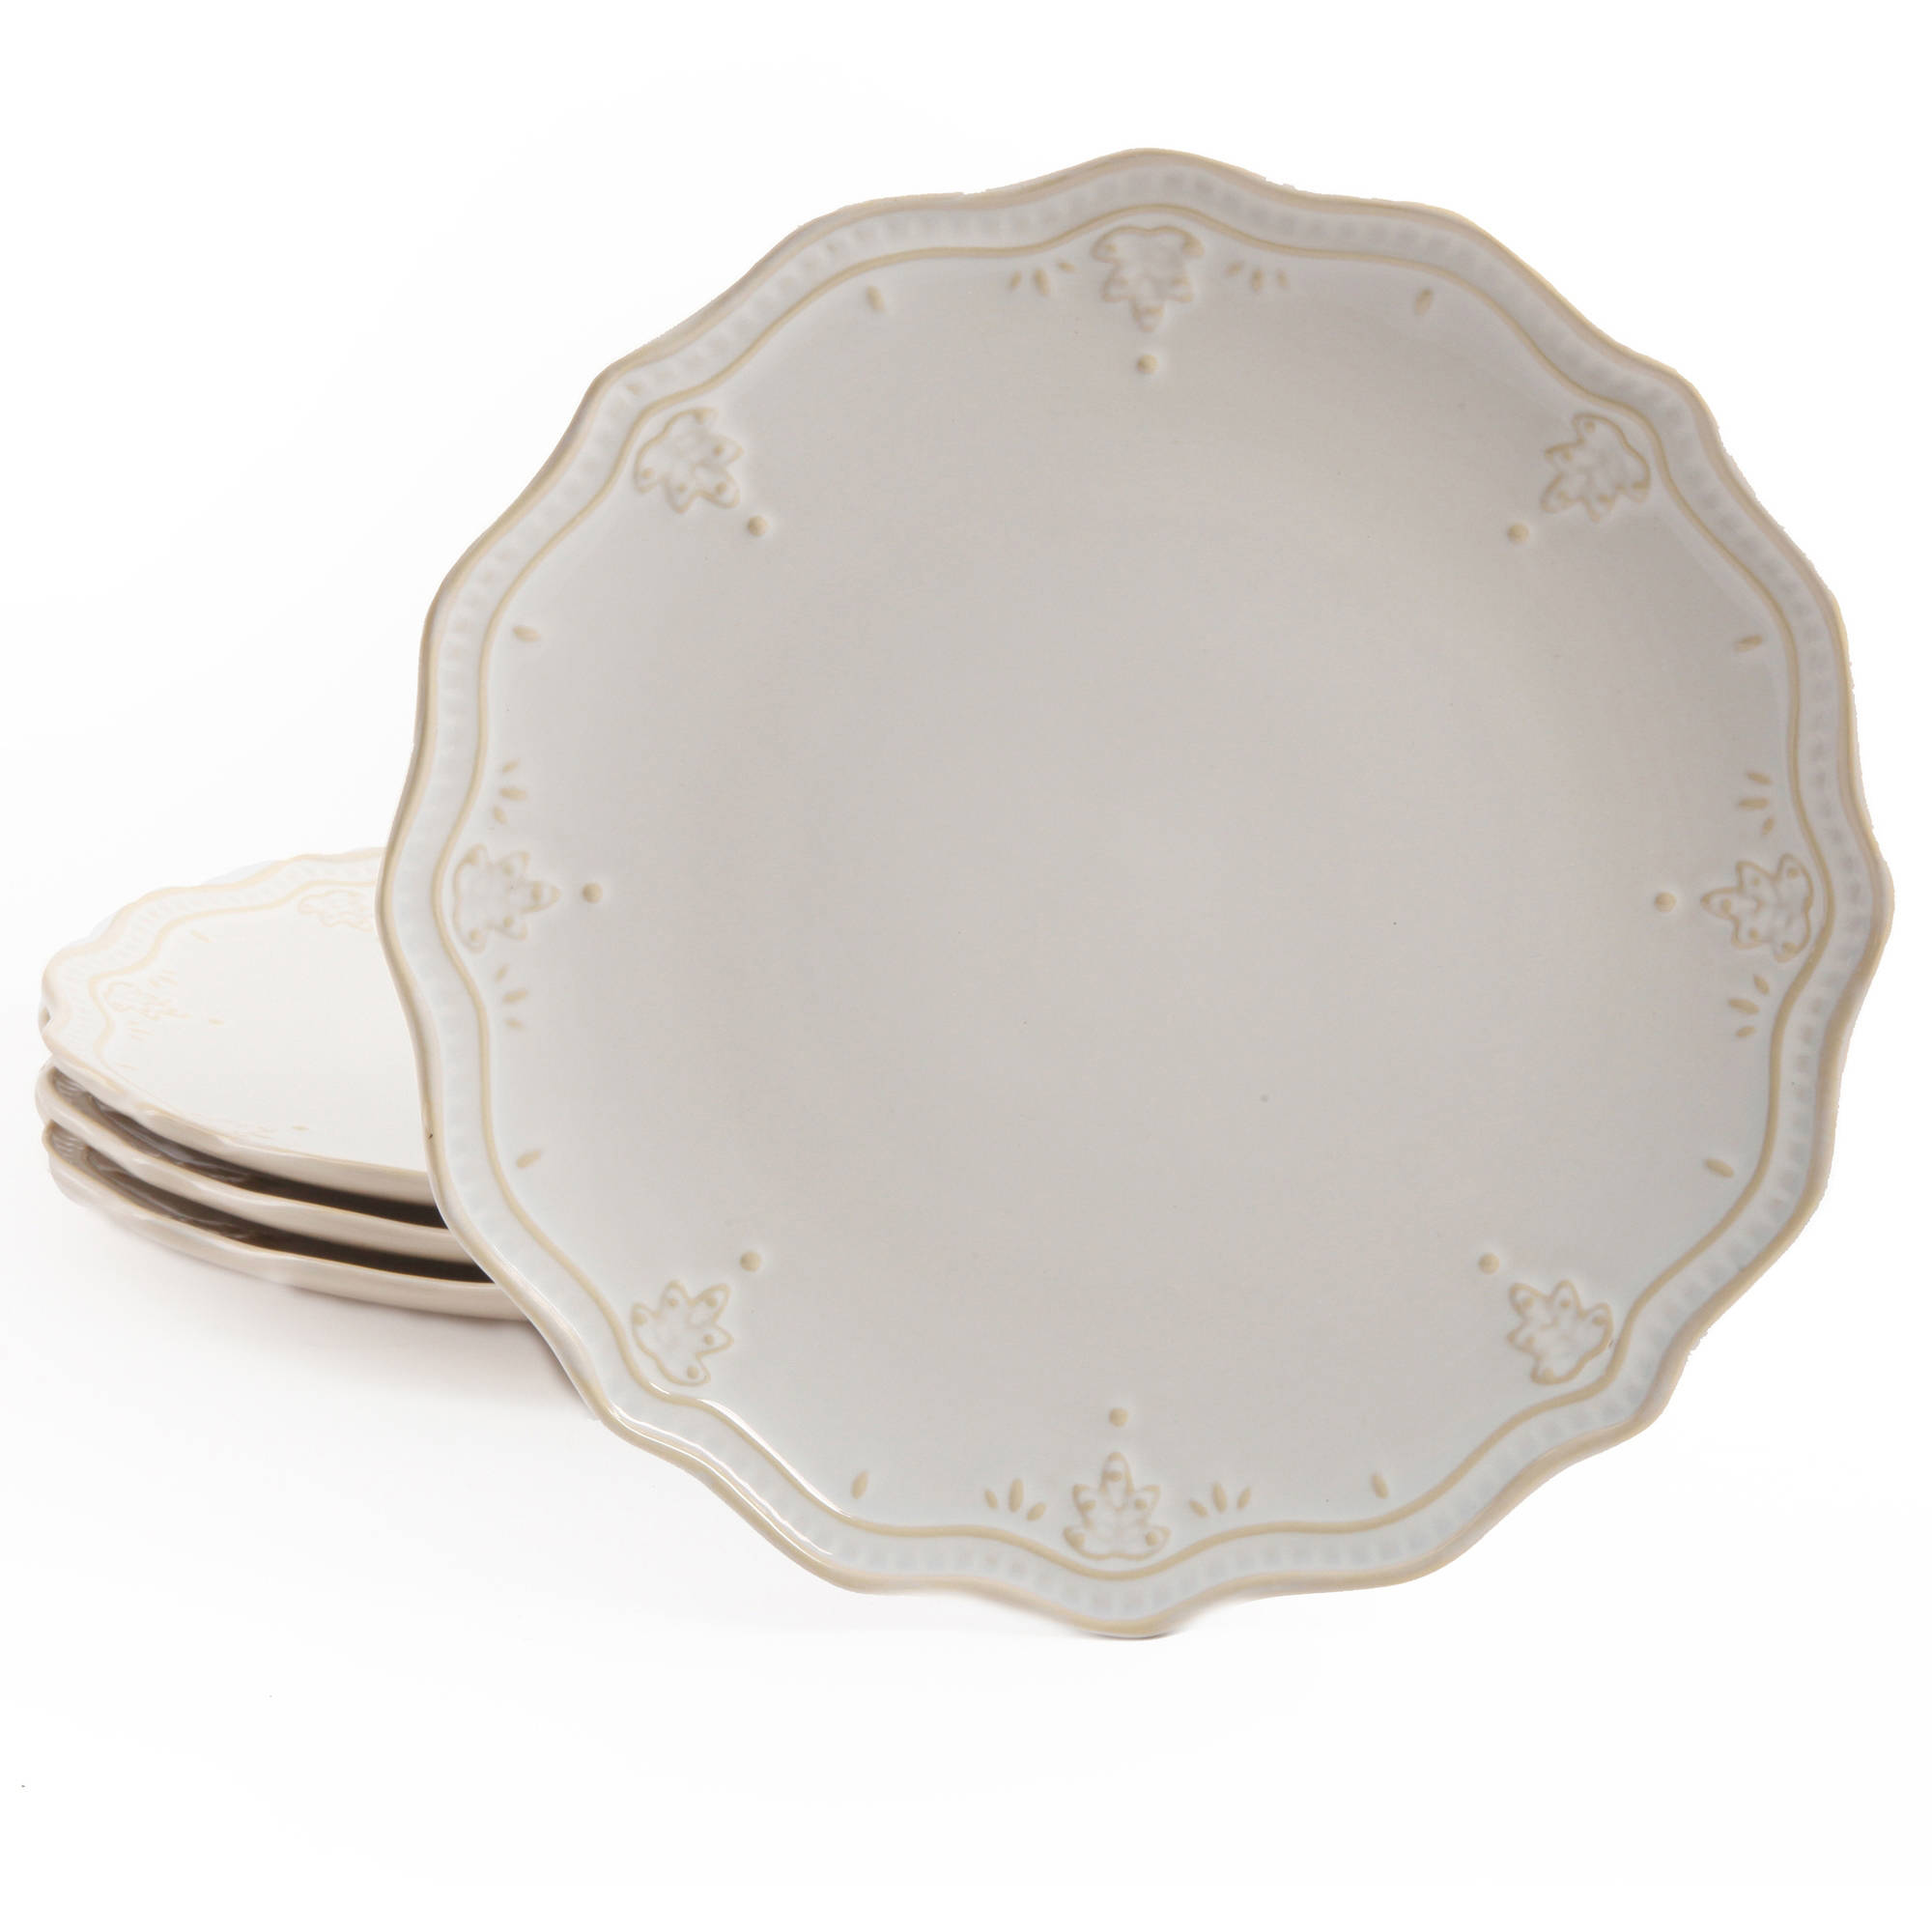 Exceptional The Pioneer Woman Farmhouse Lace Dinner Plate Set, 4 Pack   Walmart.com